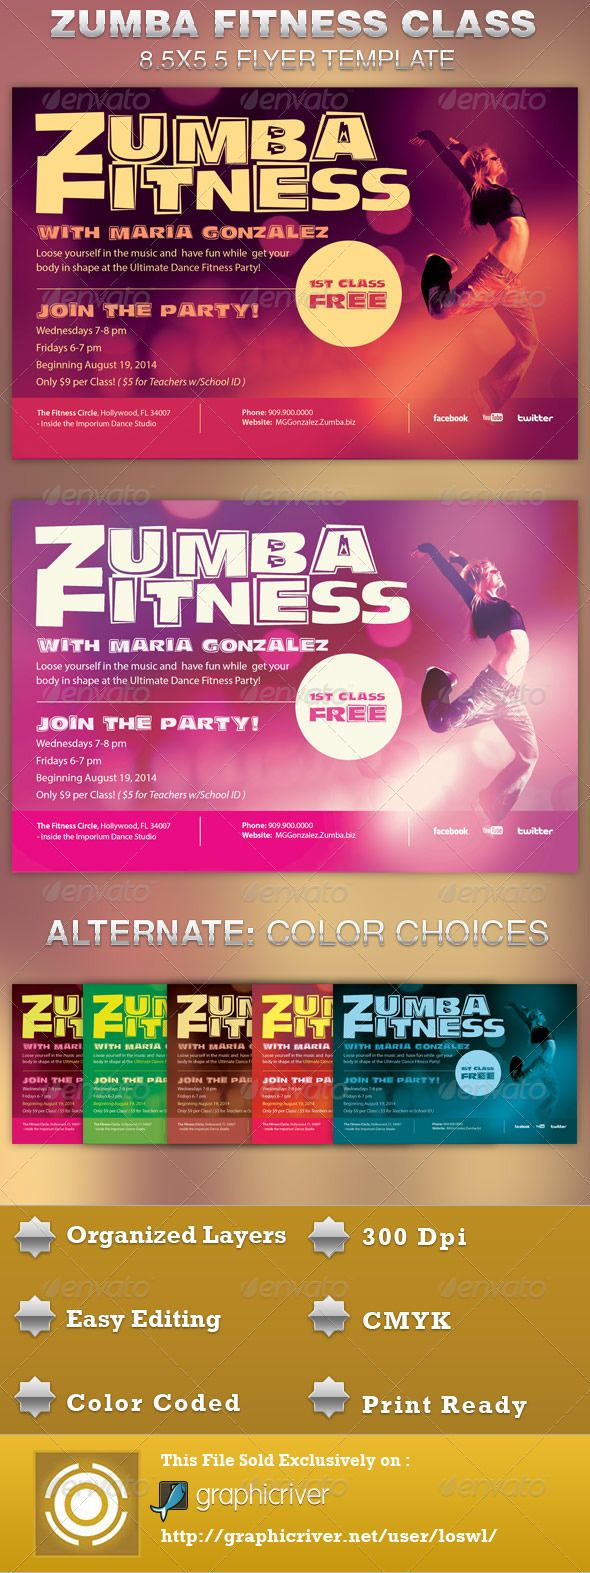 zumba fitness class flyer template trainers zumba and postcards the zumba fitness class flyer template is exclusively on graphicriver it is designed specifically